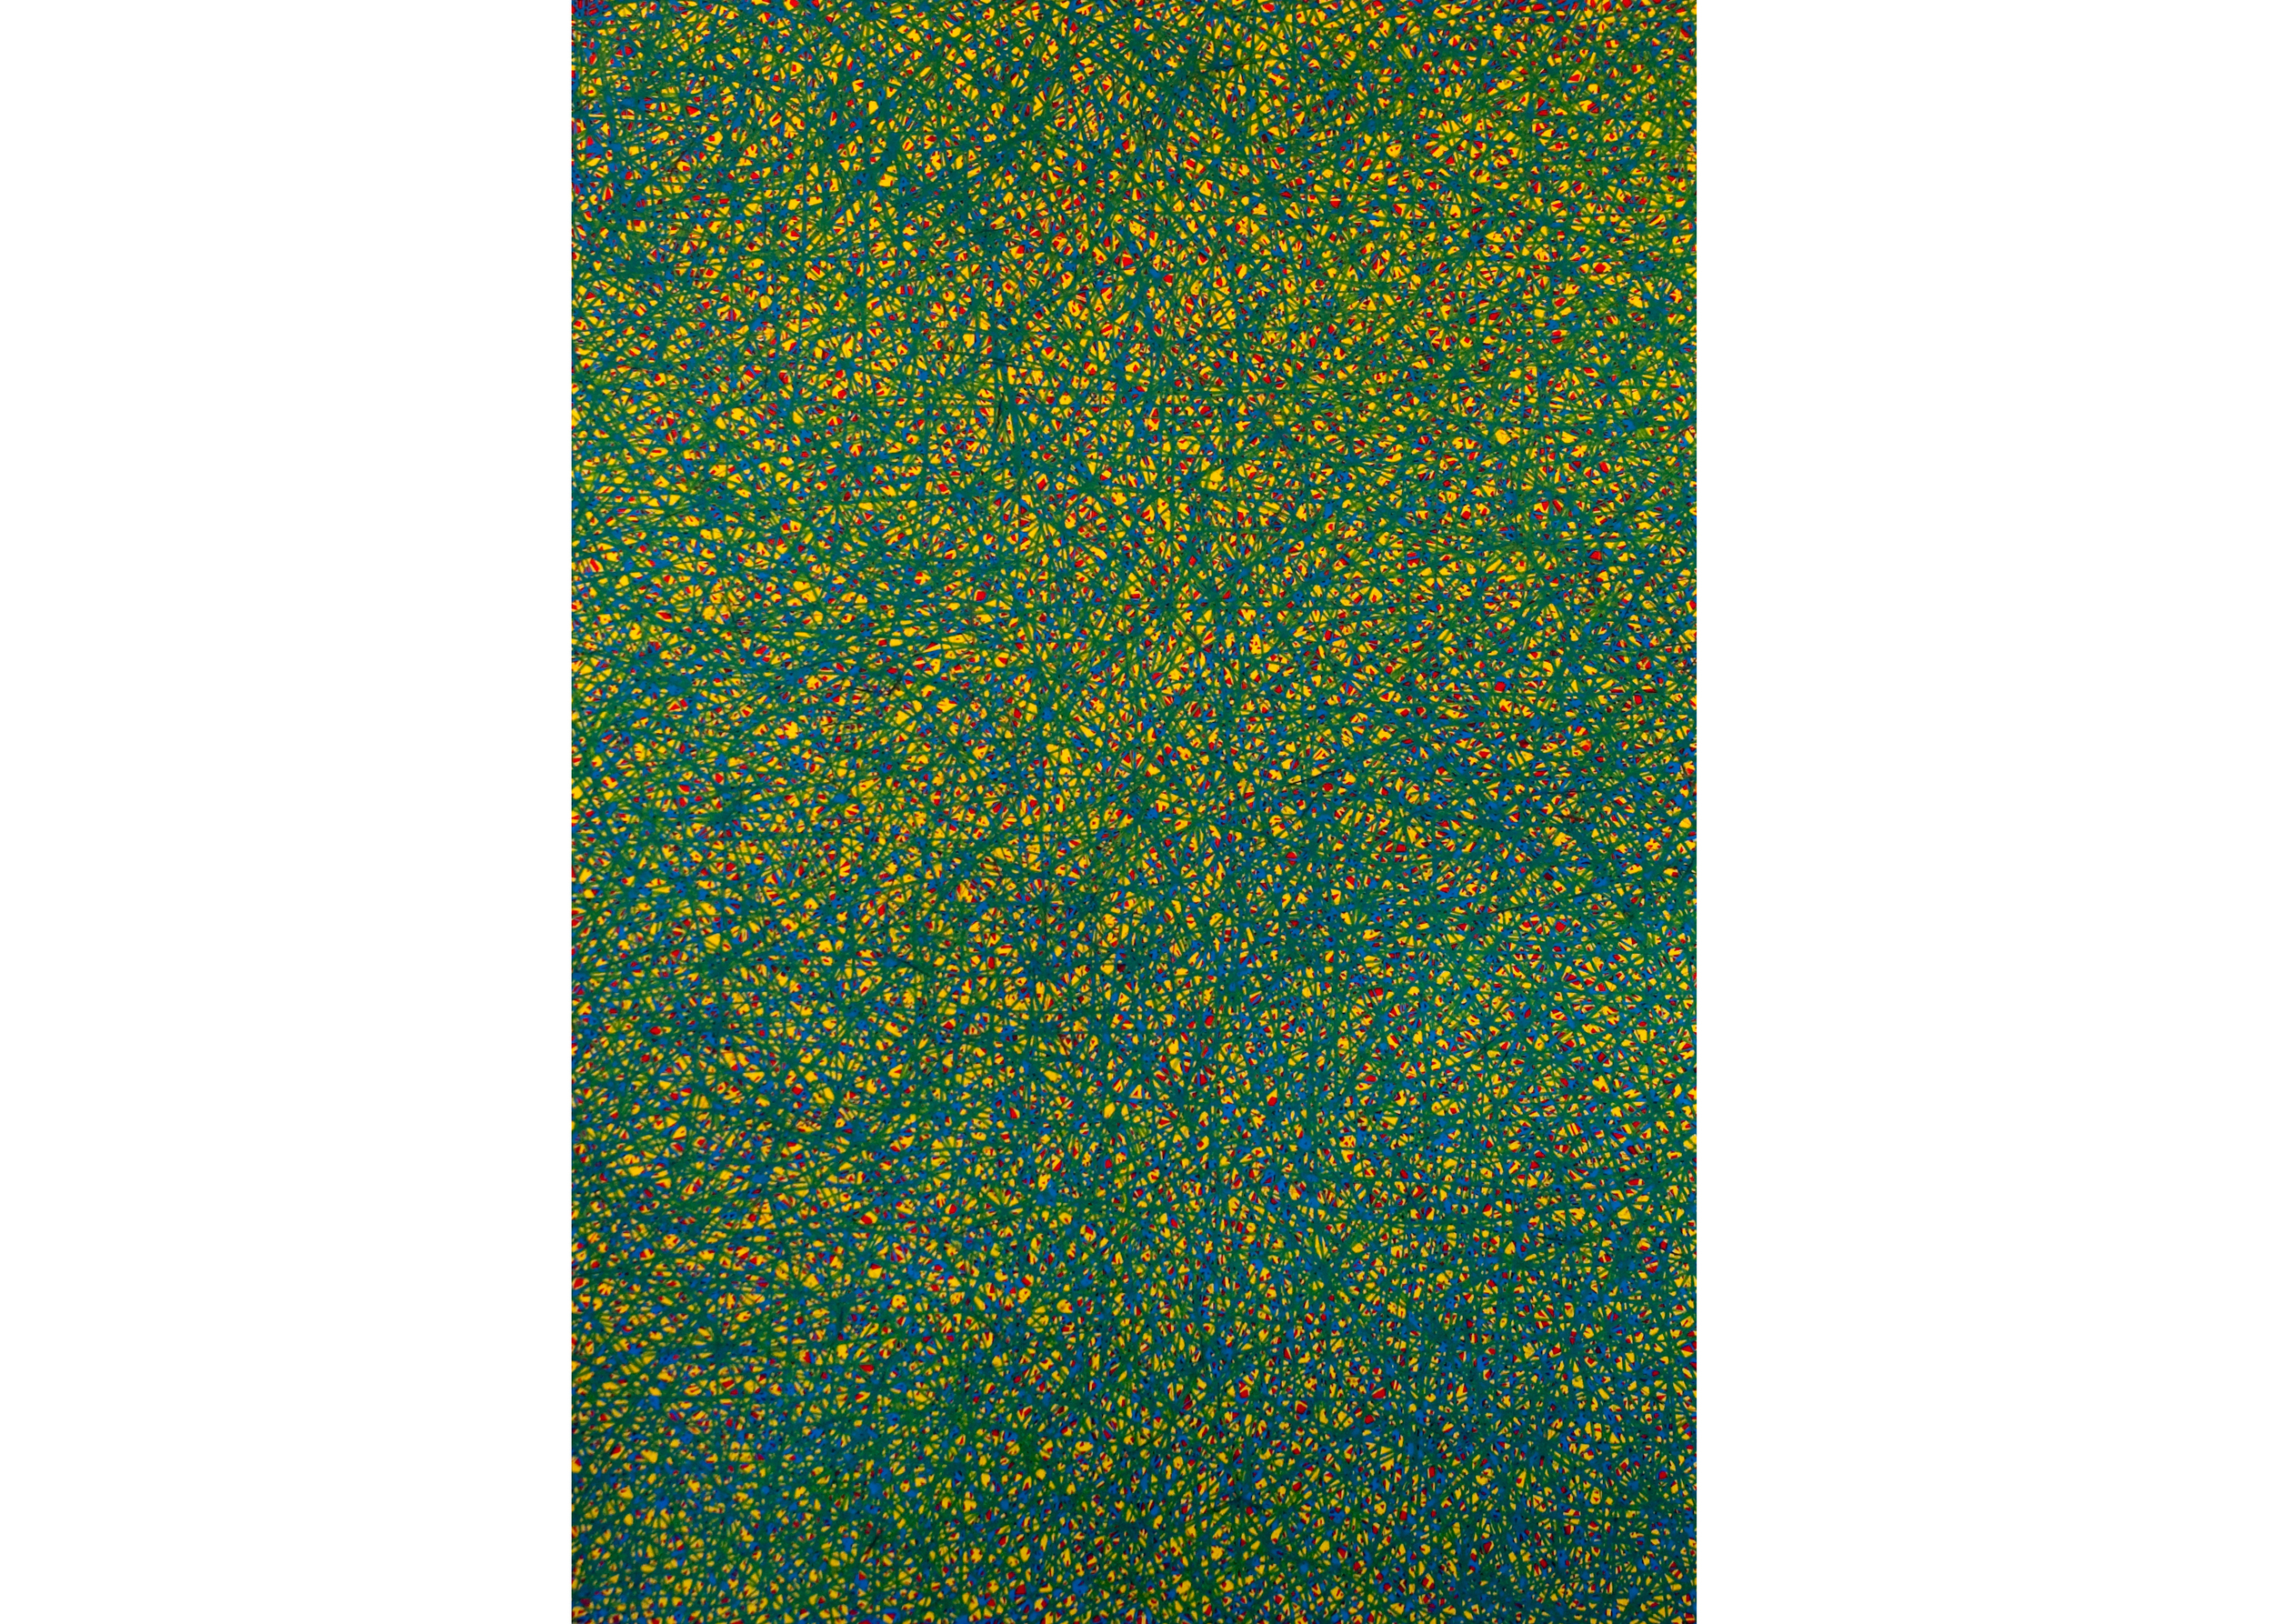 Untitled, 2010, color pencil on paper, 58 x 40 in.